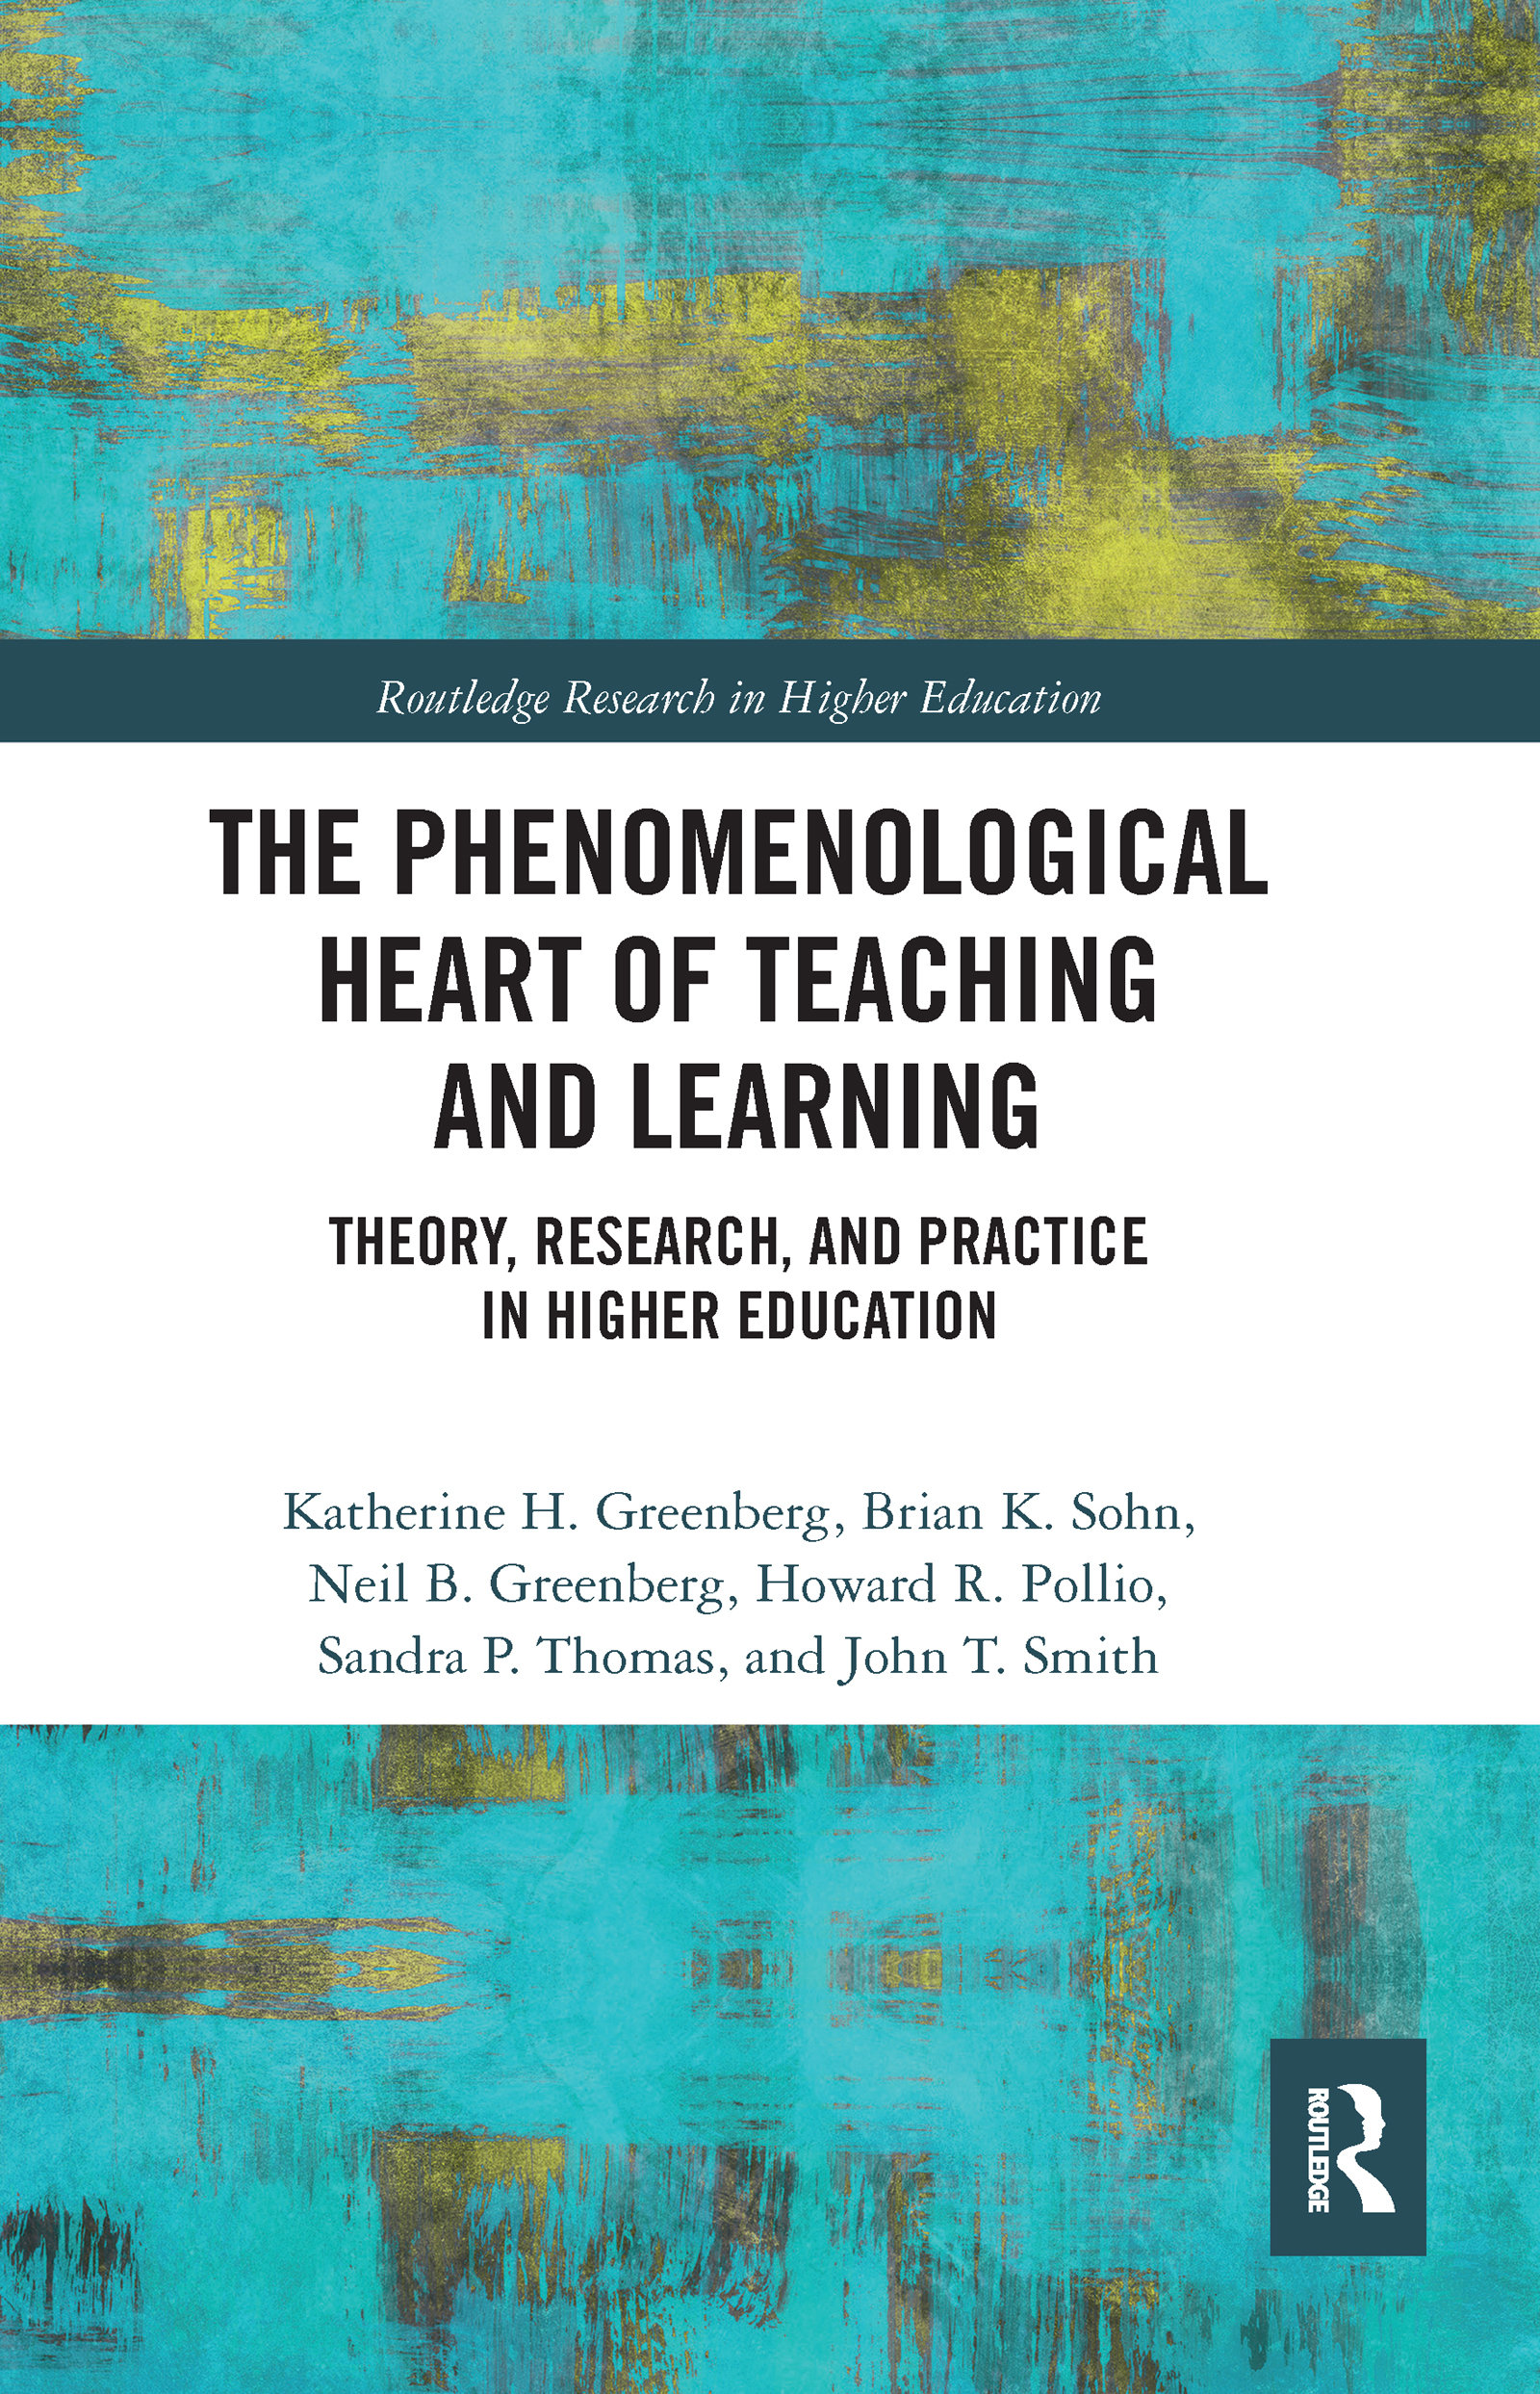 The Phenomenological Heart of Teaching and Learning